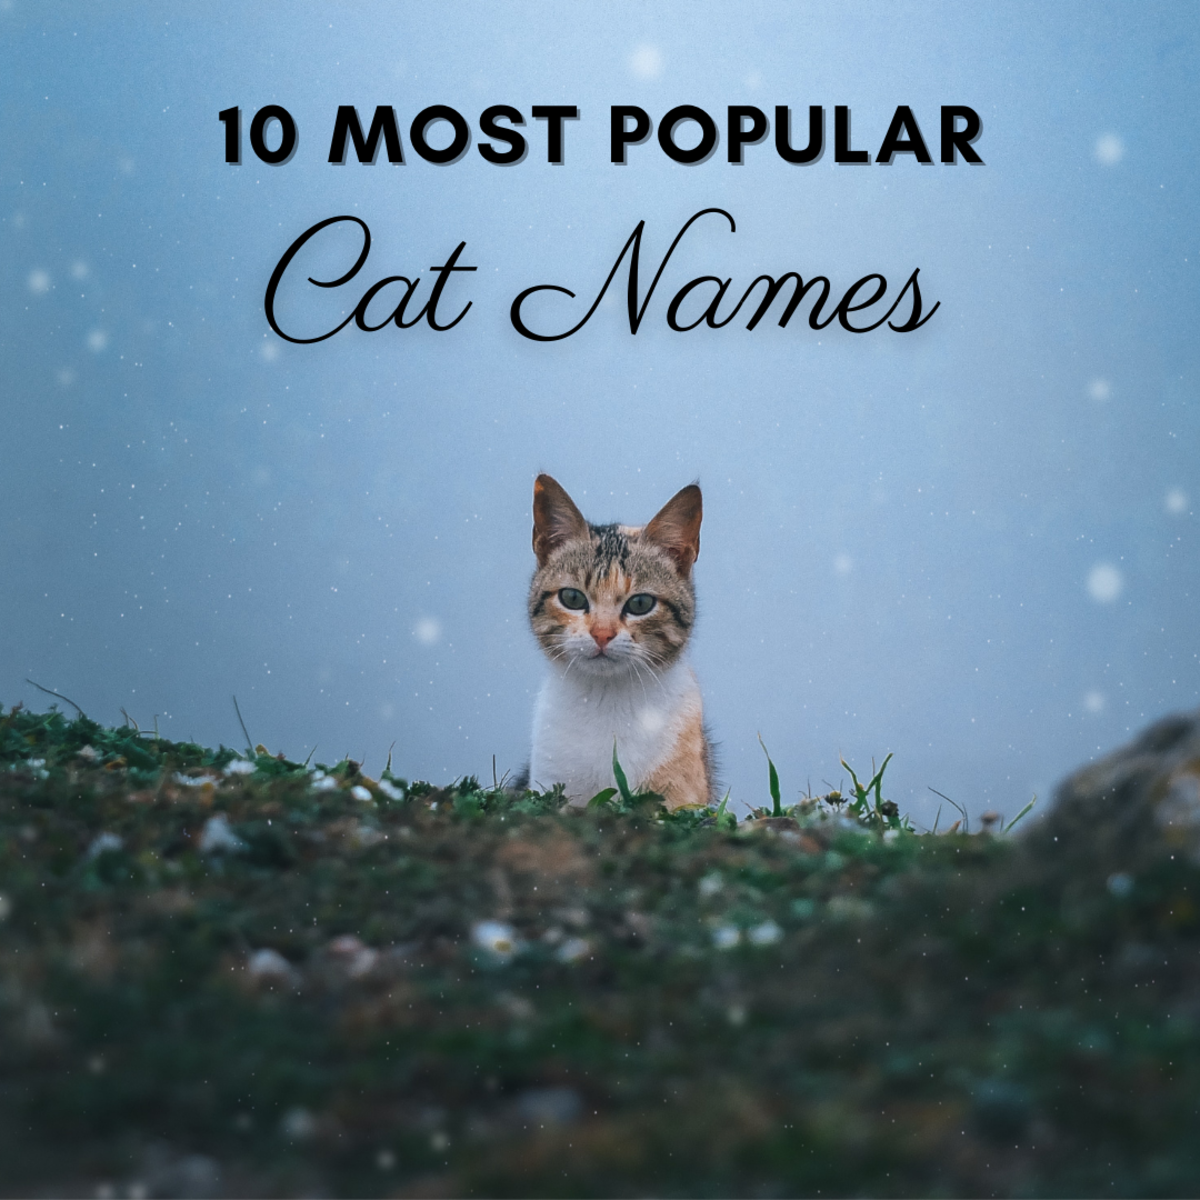 This article will explore 10 of the most popular unisex cat names to hopefully provide you with some inspiration!